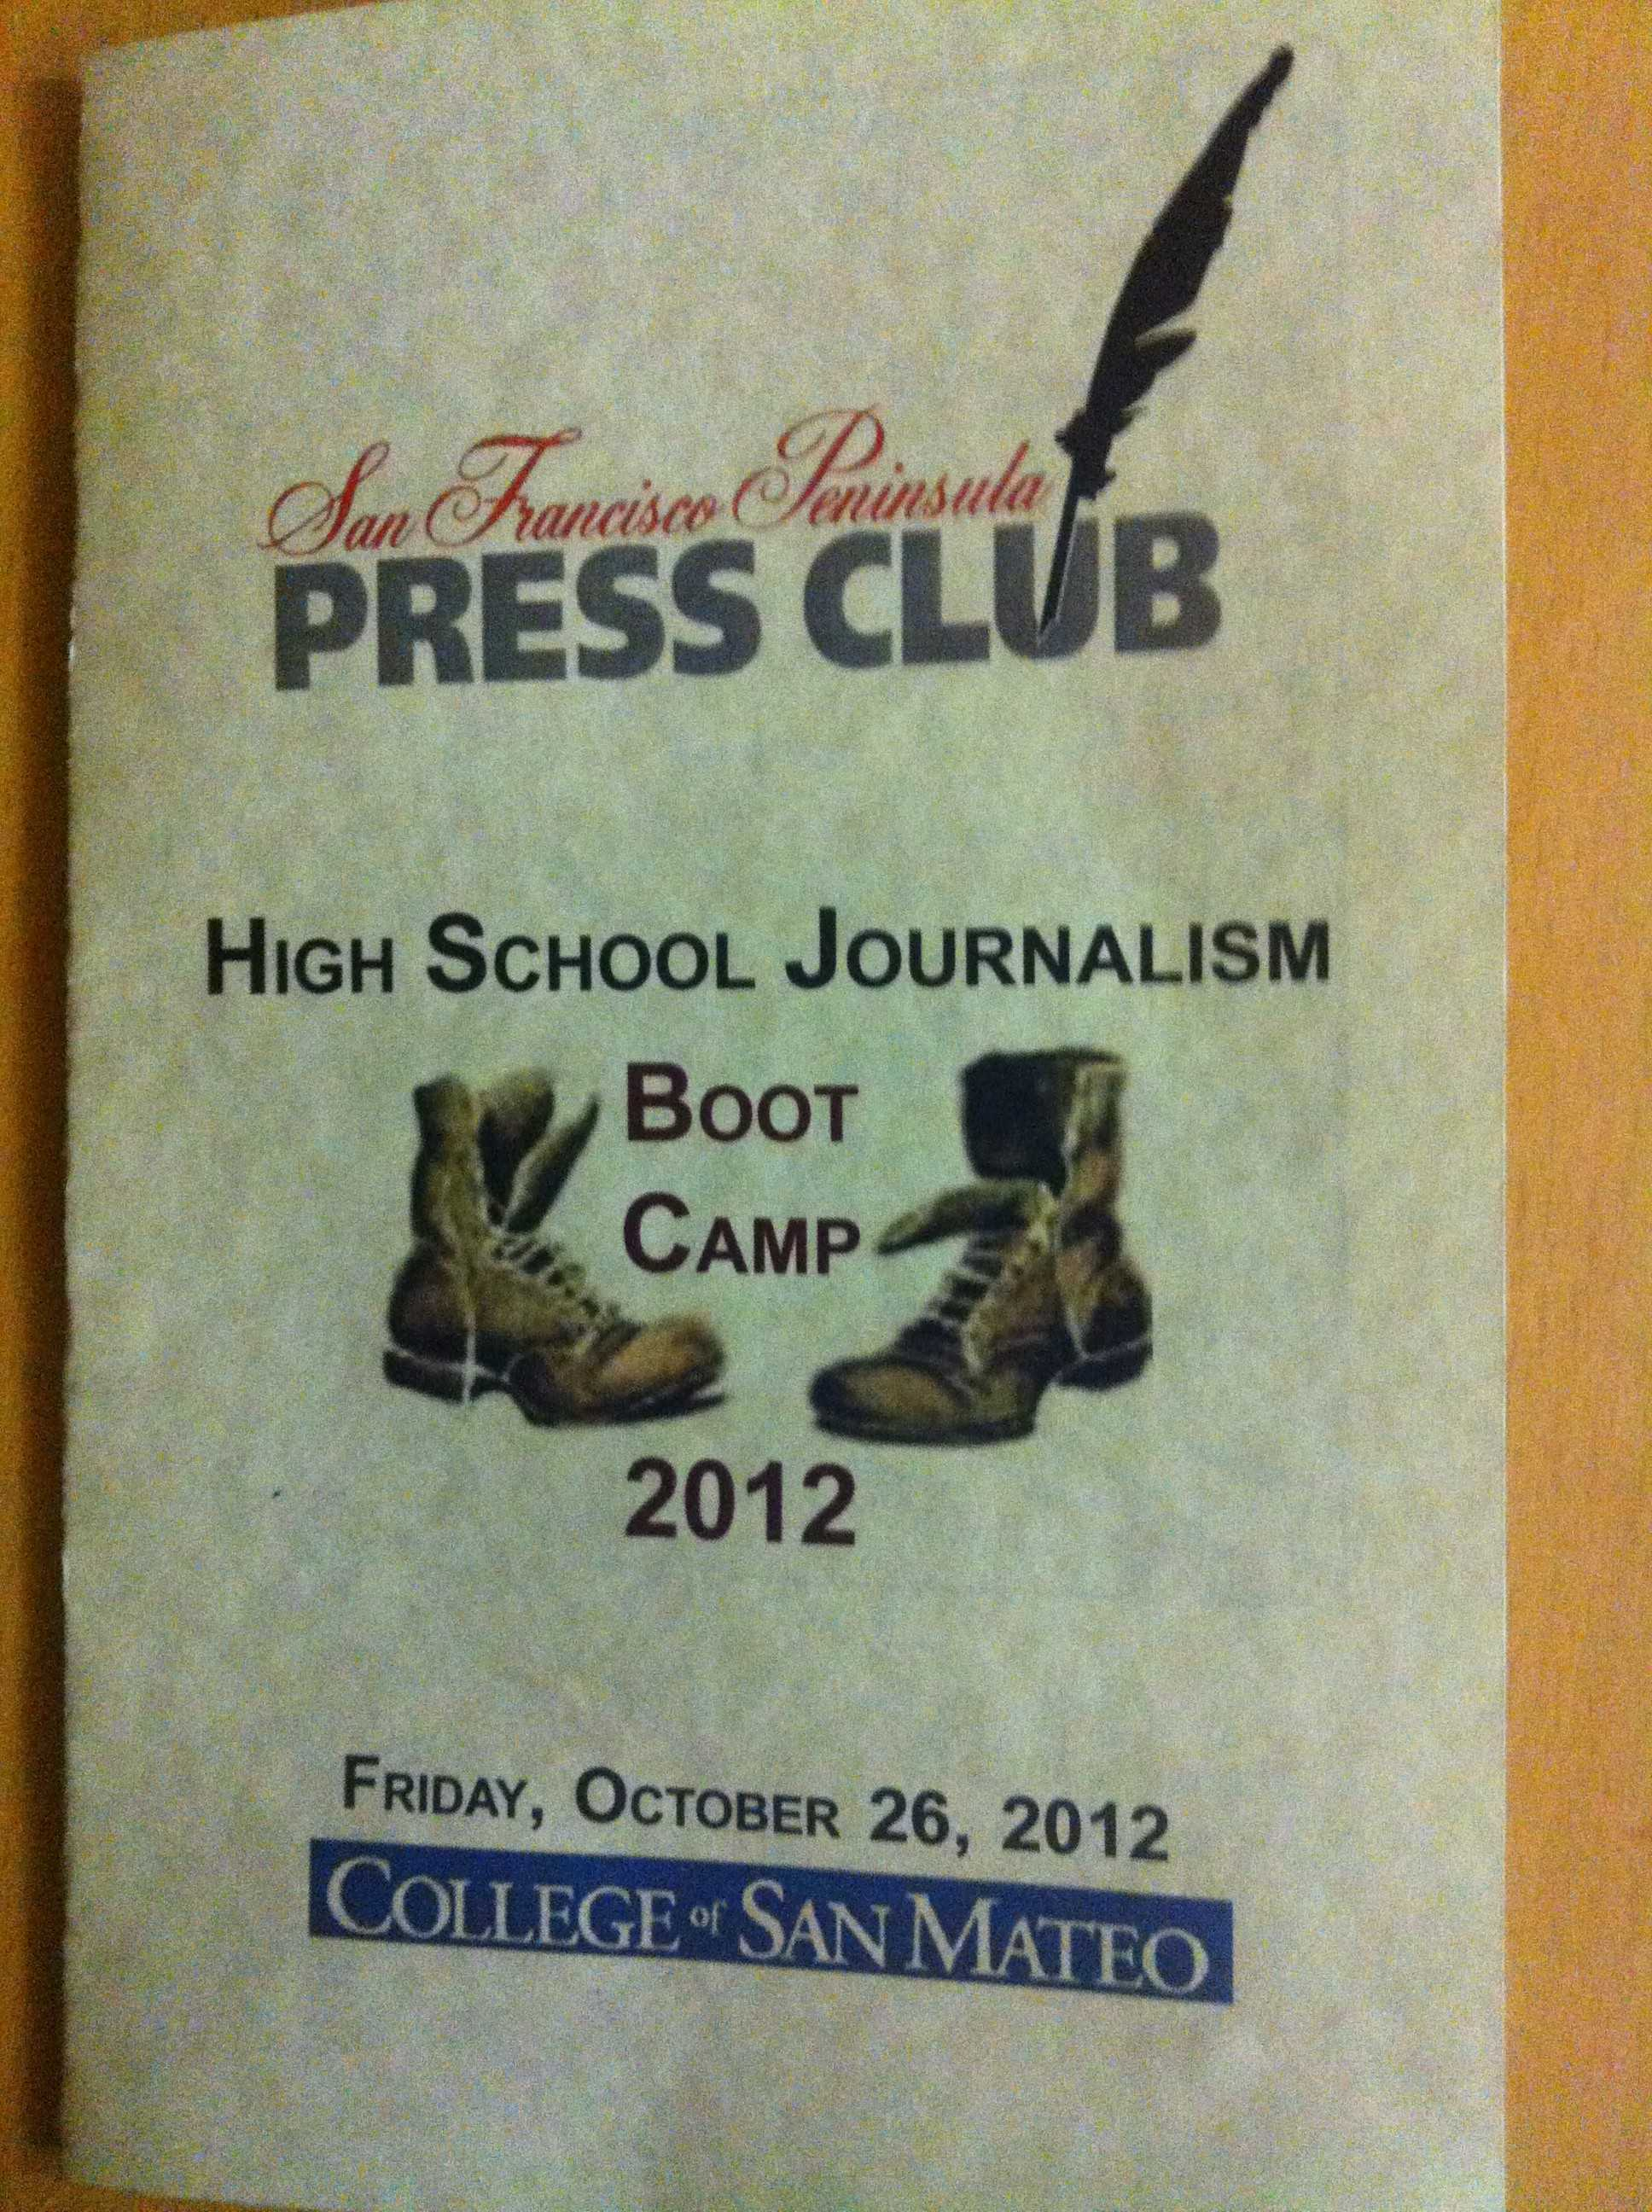 Journalism students attend boot camp at College of San Mateo